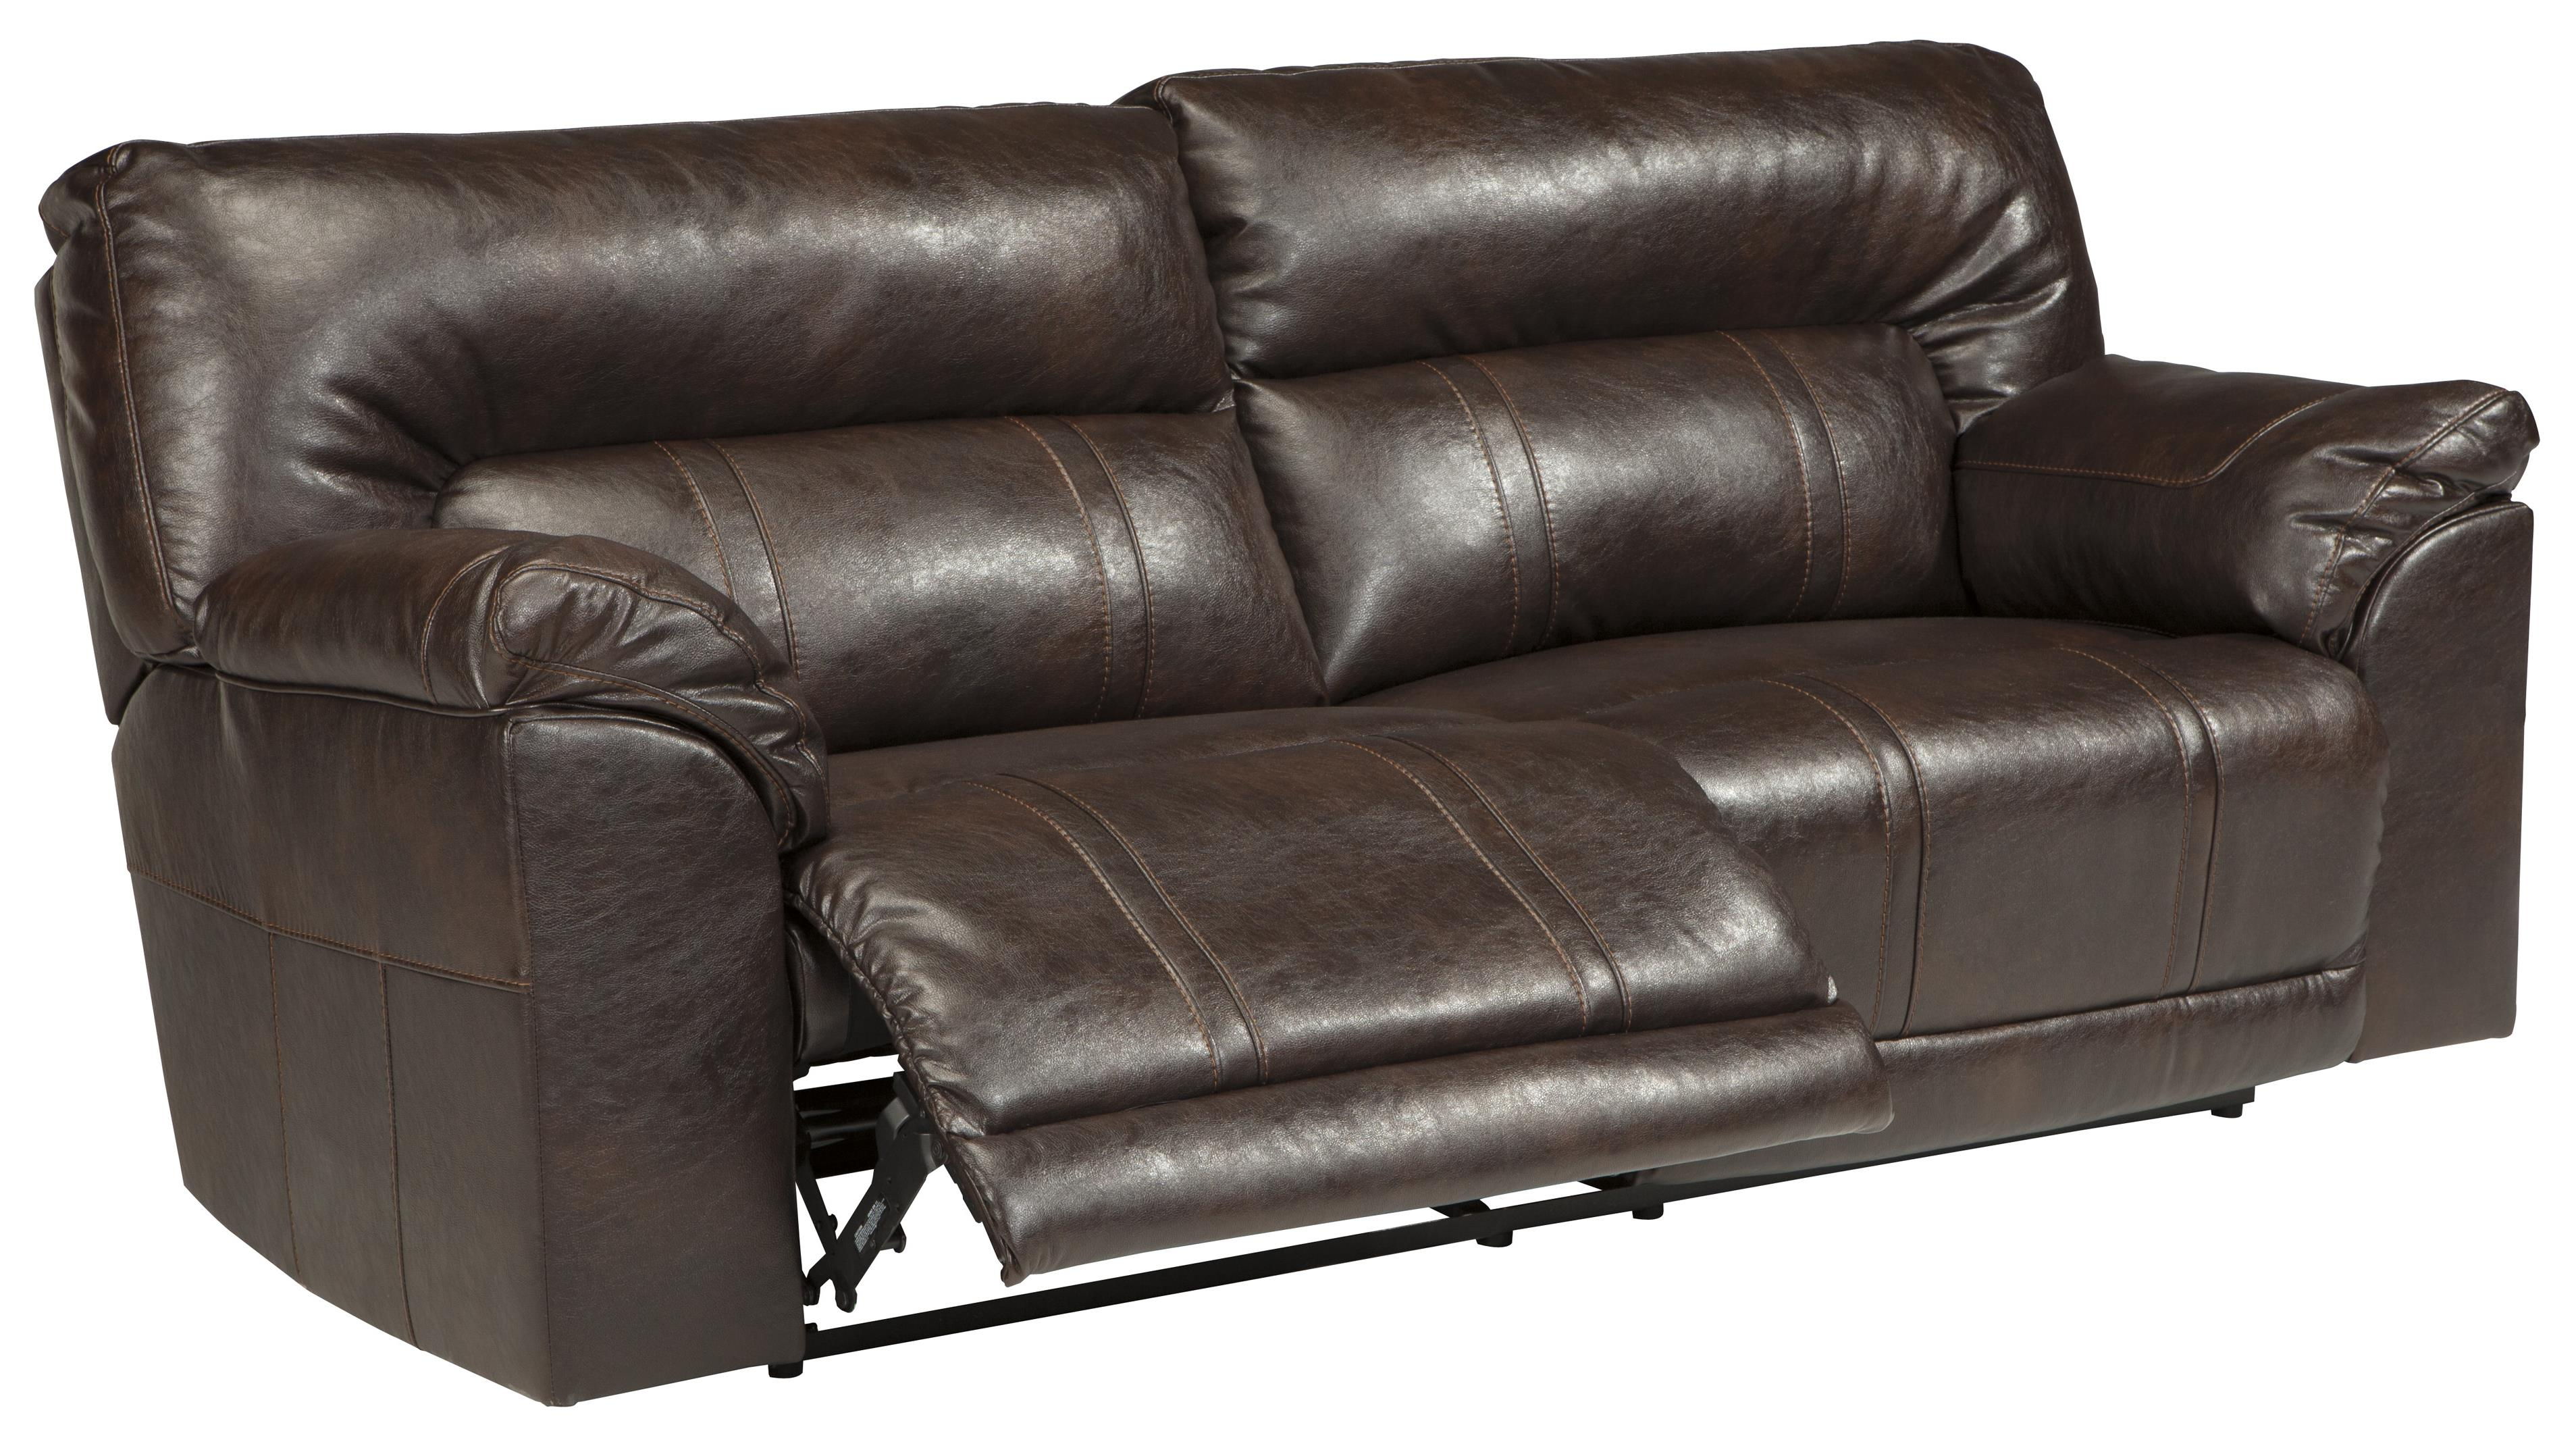 Faux Leather 2 Seat Reclining Sofa By Benchcraft Wolf And Gardiner Wolf Furniture